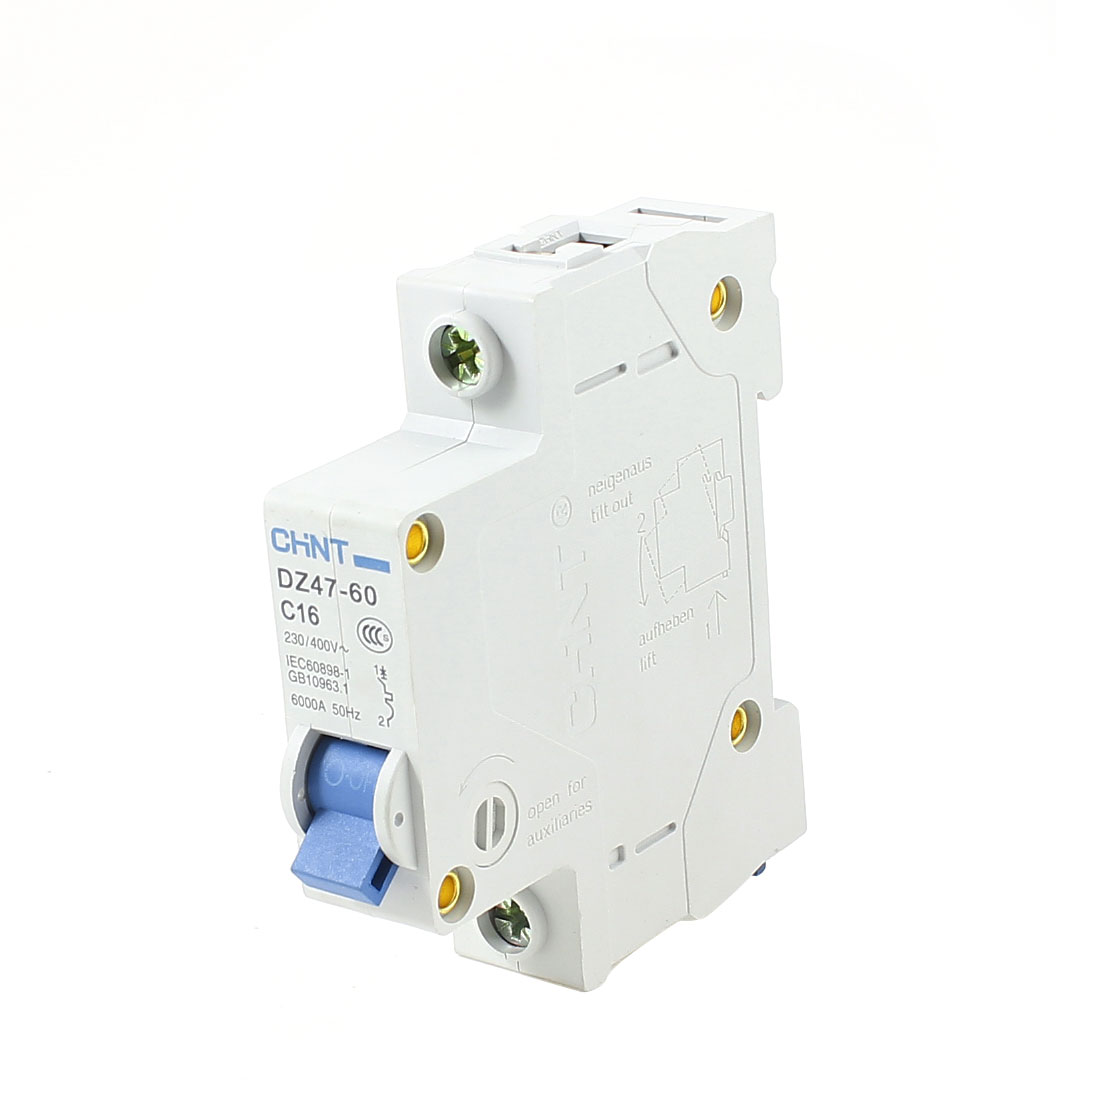 35mm DIN Rail Mounted One Pole Miniature Circuit Breaker AC 230/400V 16A